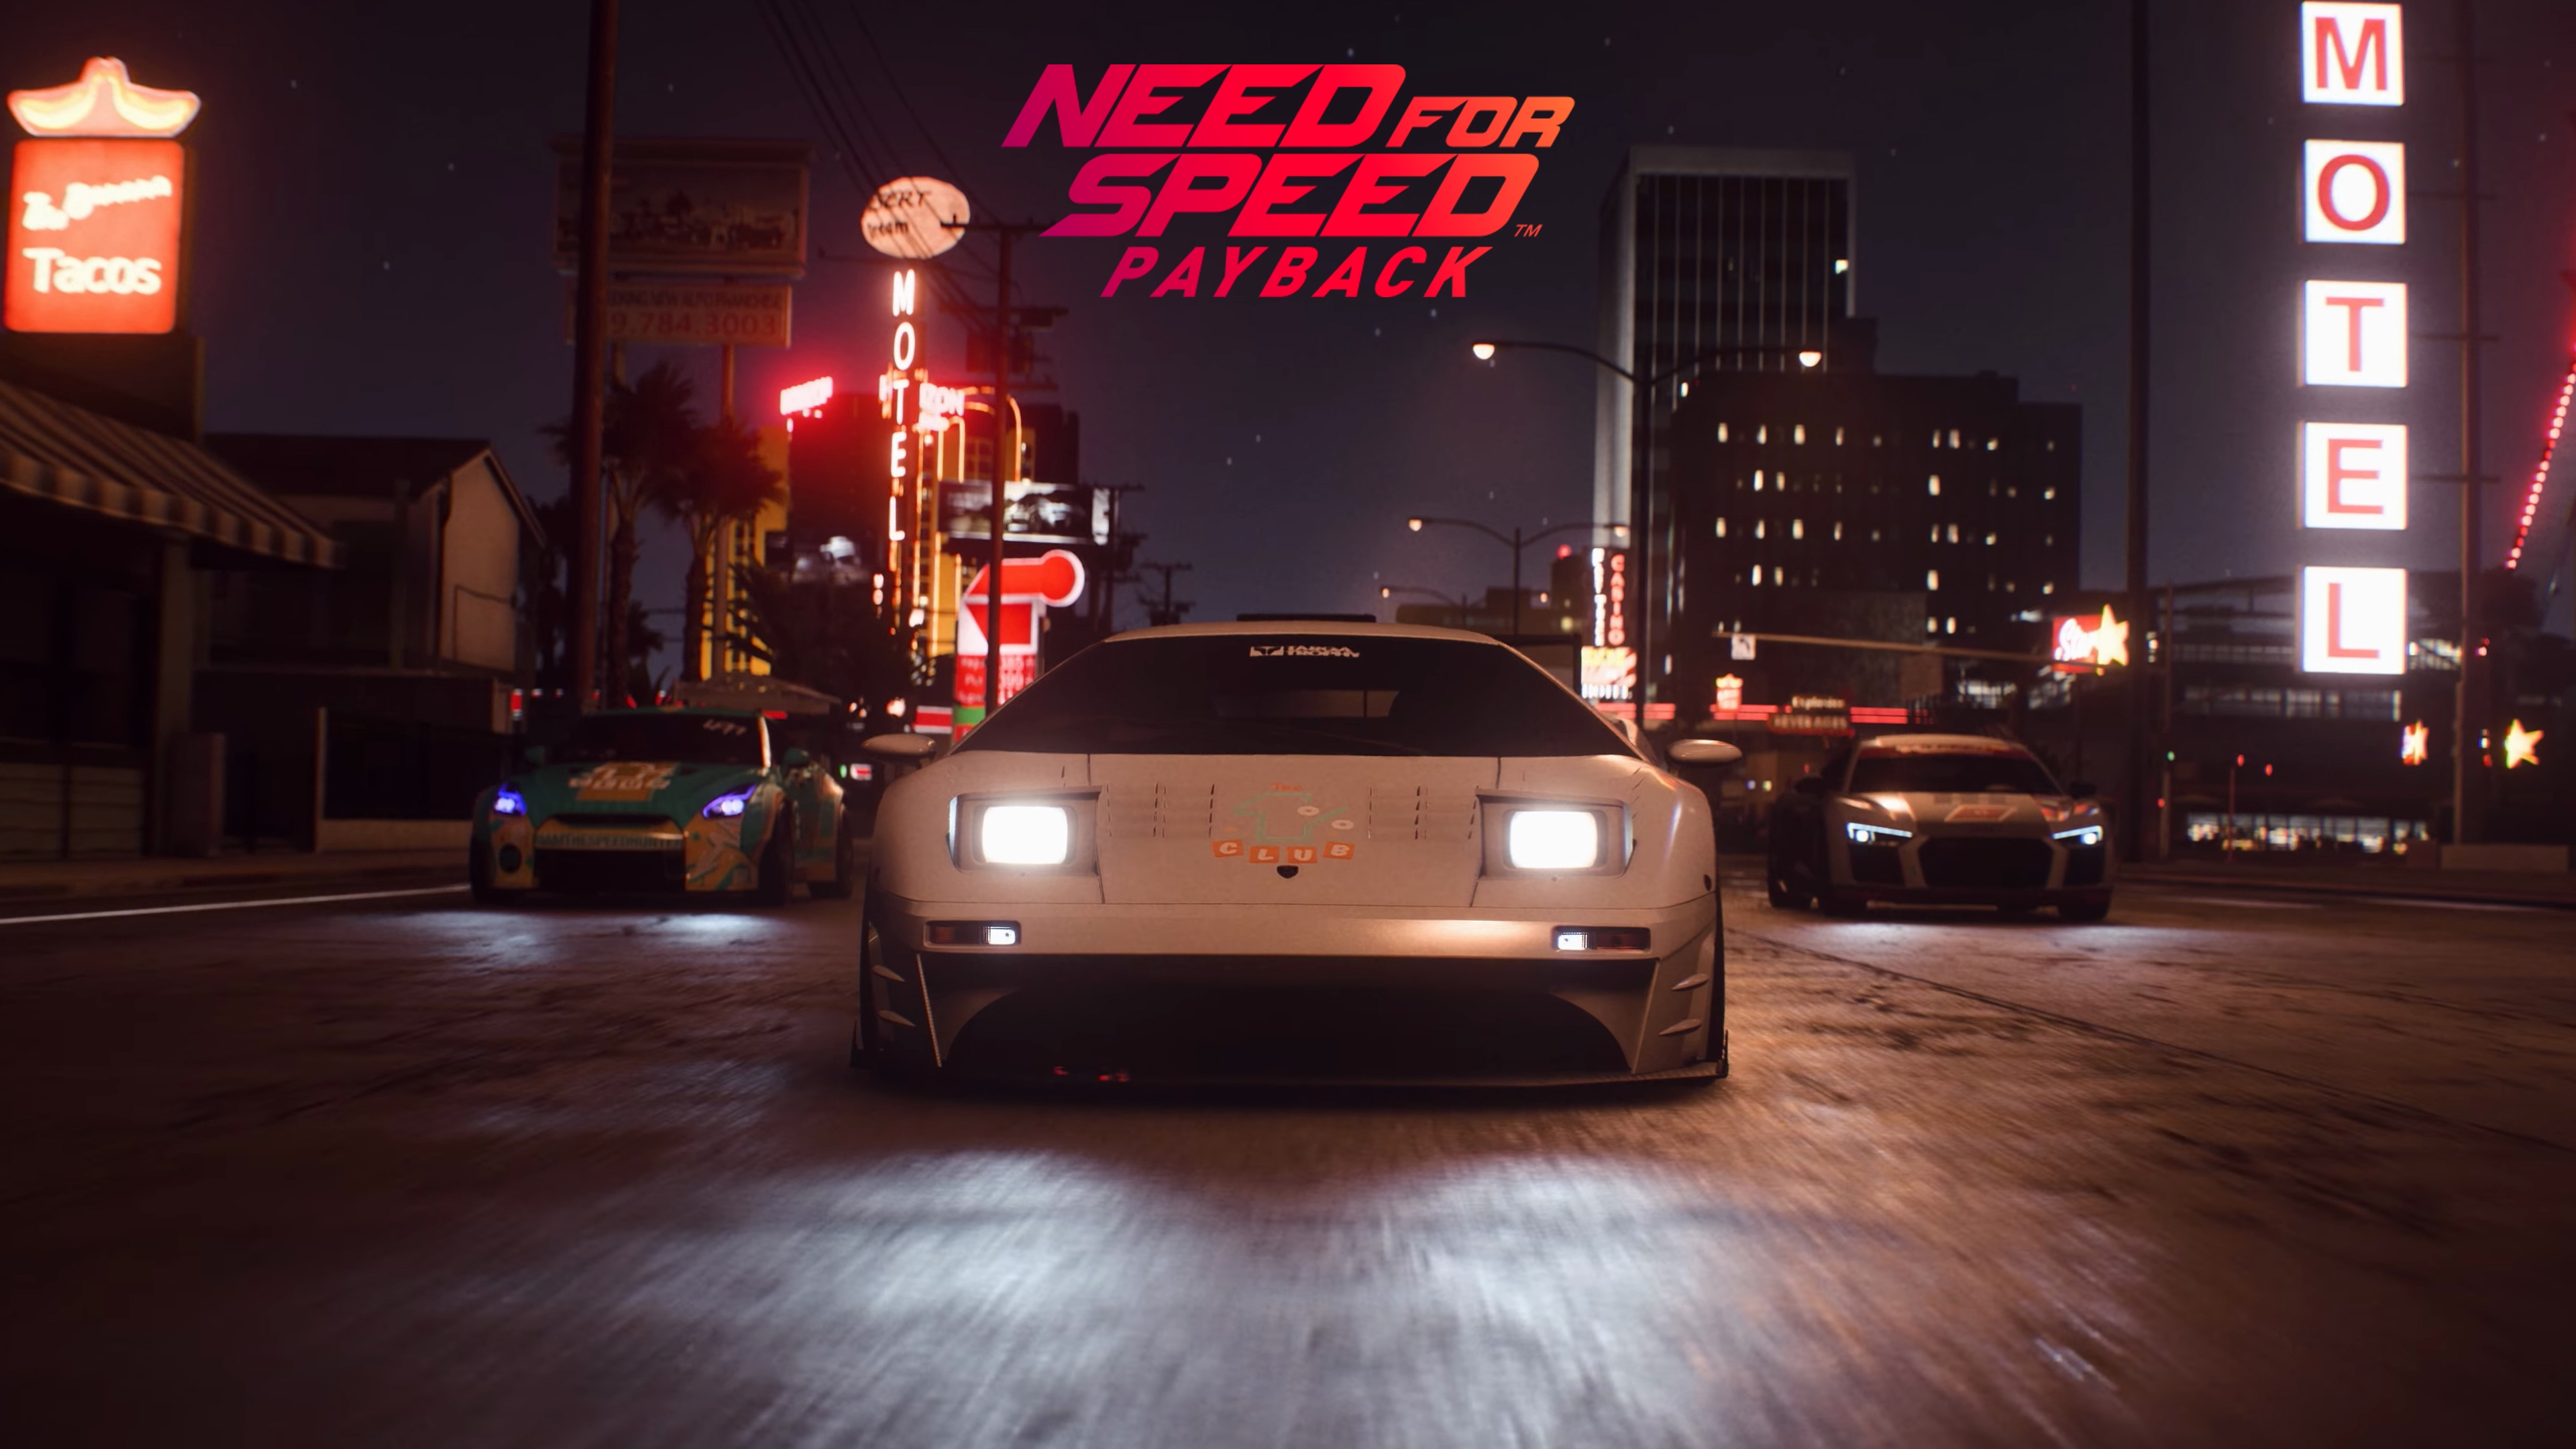 Need for Speed Payback [Video Game] Wallpaper HD 3840x2160